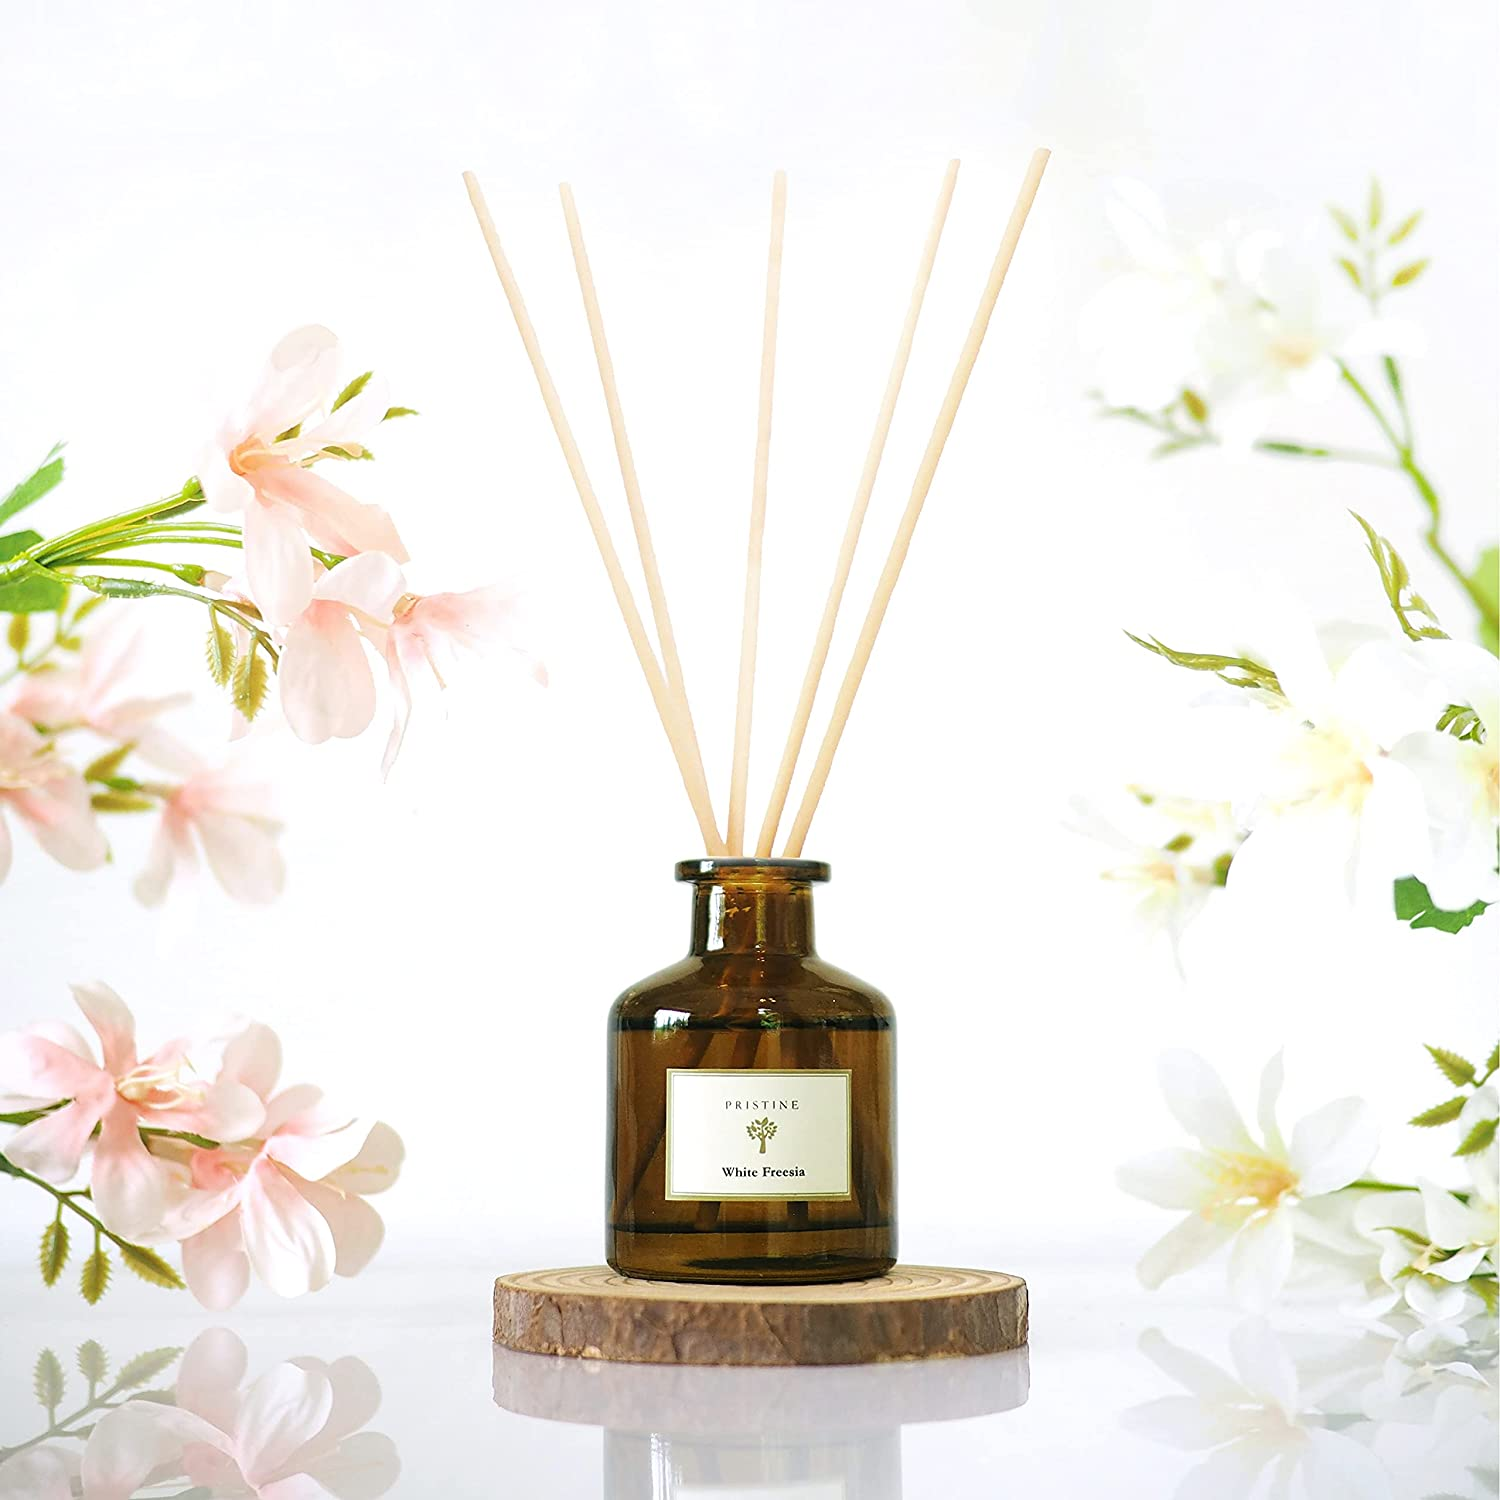 Reed Diffuser for Home & Bathroom | Refreshing Freesia Fragrance Diffuser | Home Fragrance Products | Scented Oil Diffuser Sticks | Reed Diffuser Set | Scented Sticks Diffuser - Home Scent Diffuser